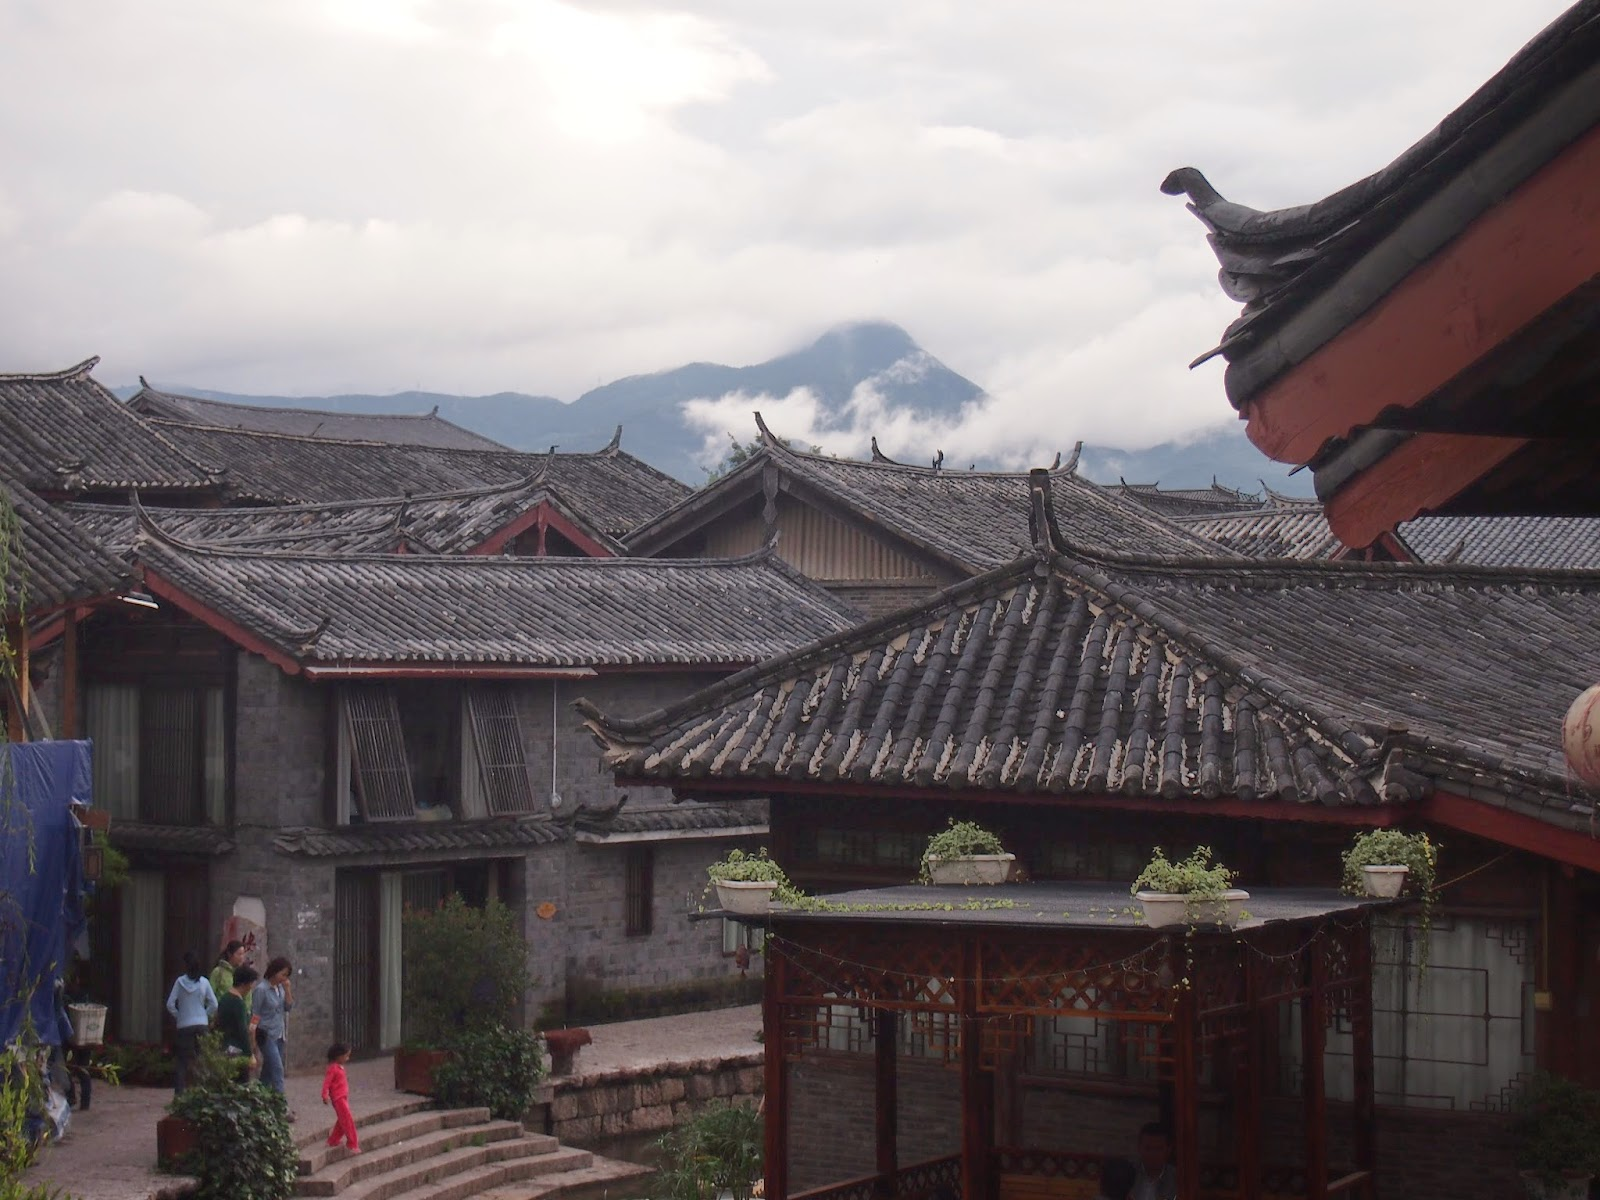 The lijiang old town with Naxi architecture style